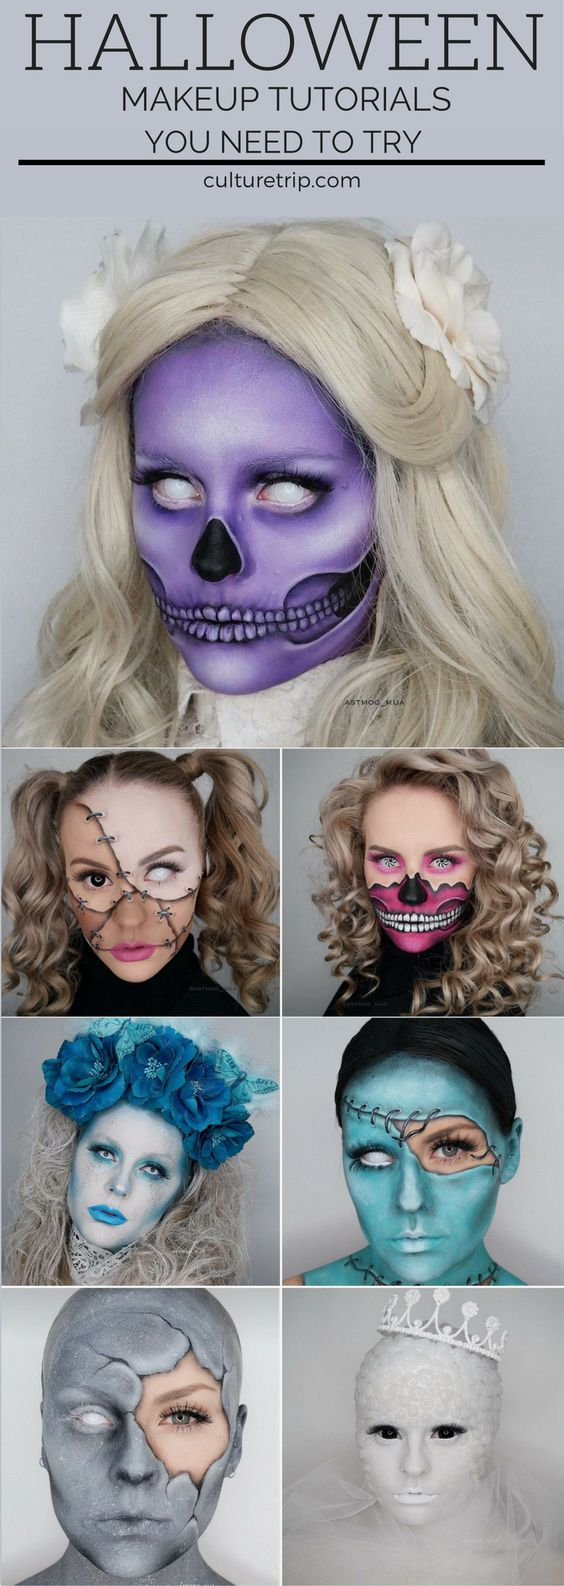 Halloween Make Up Tutorials You Need To Try